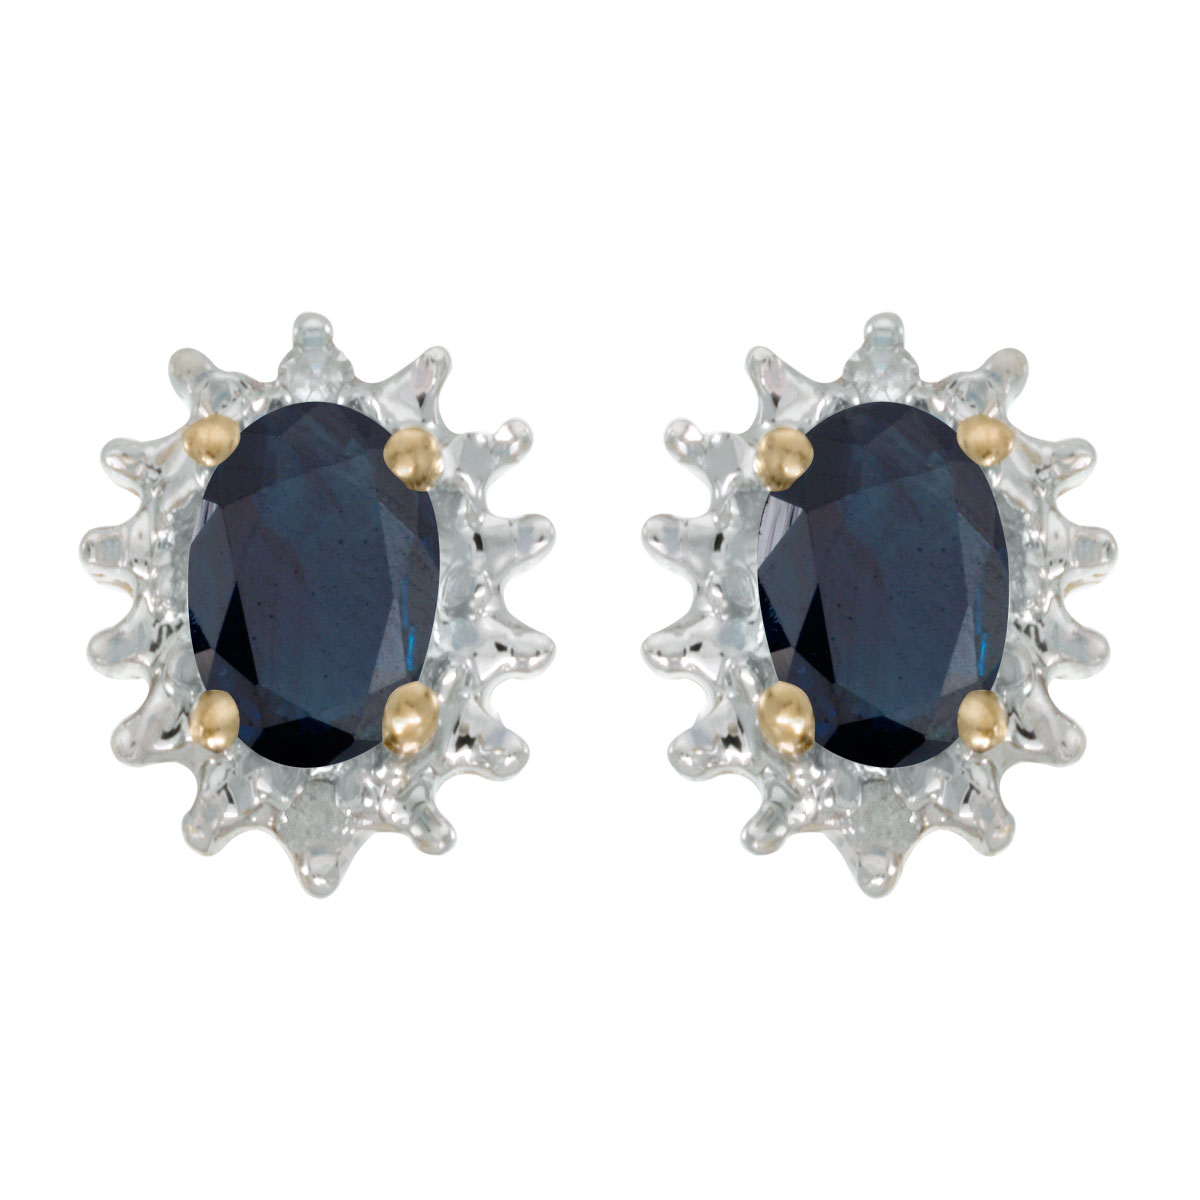 JCX1996: These 14k yellow gold oval sapphire and diamond earrings feature 6x4 mm genuine natural sapphires with a 0.78 ct total weight and .04 ct diamonds.